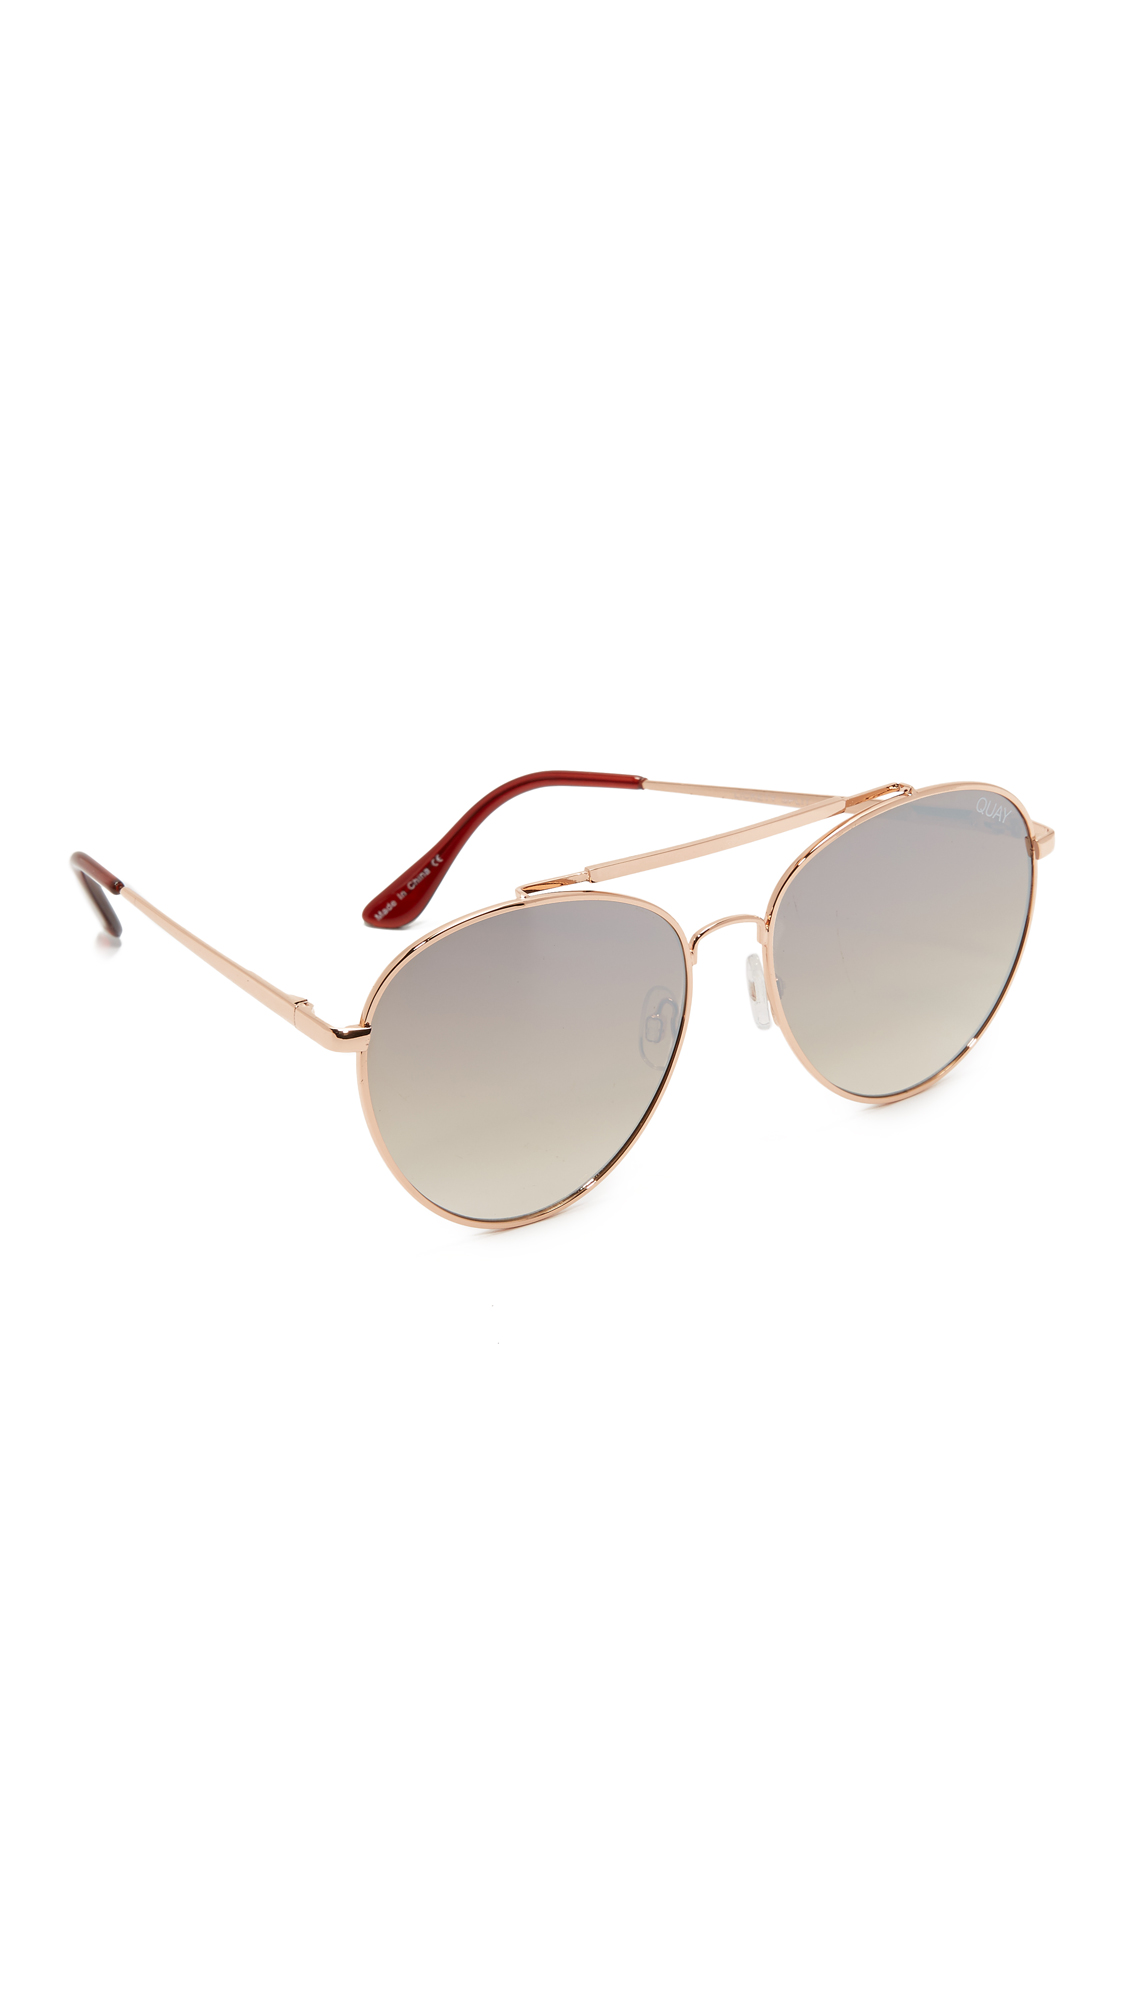 857d27aa5d6 Quay lickety split sunglasses shopbop jpg 1128x2000 Quay philippines elle  shades